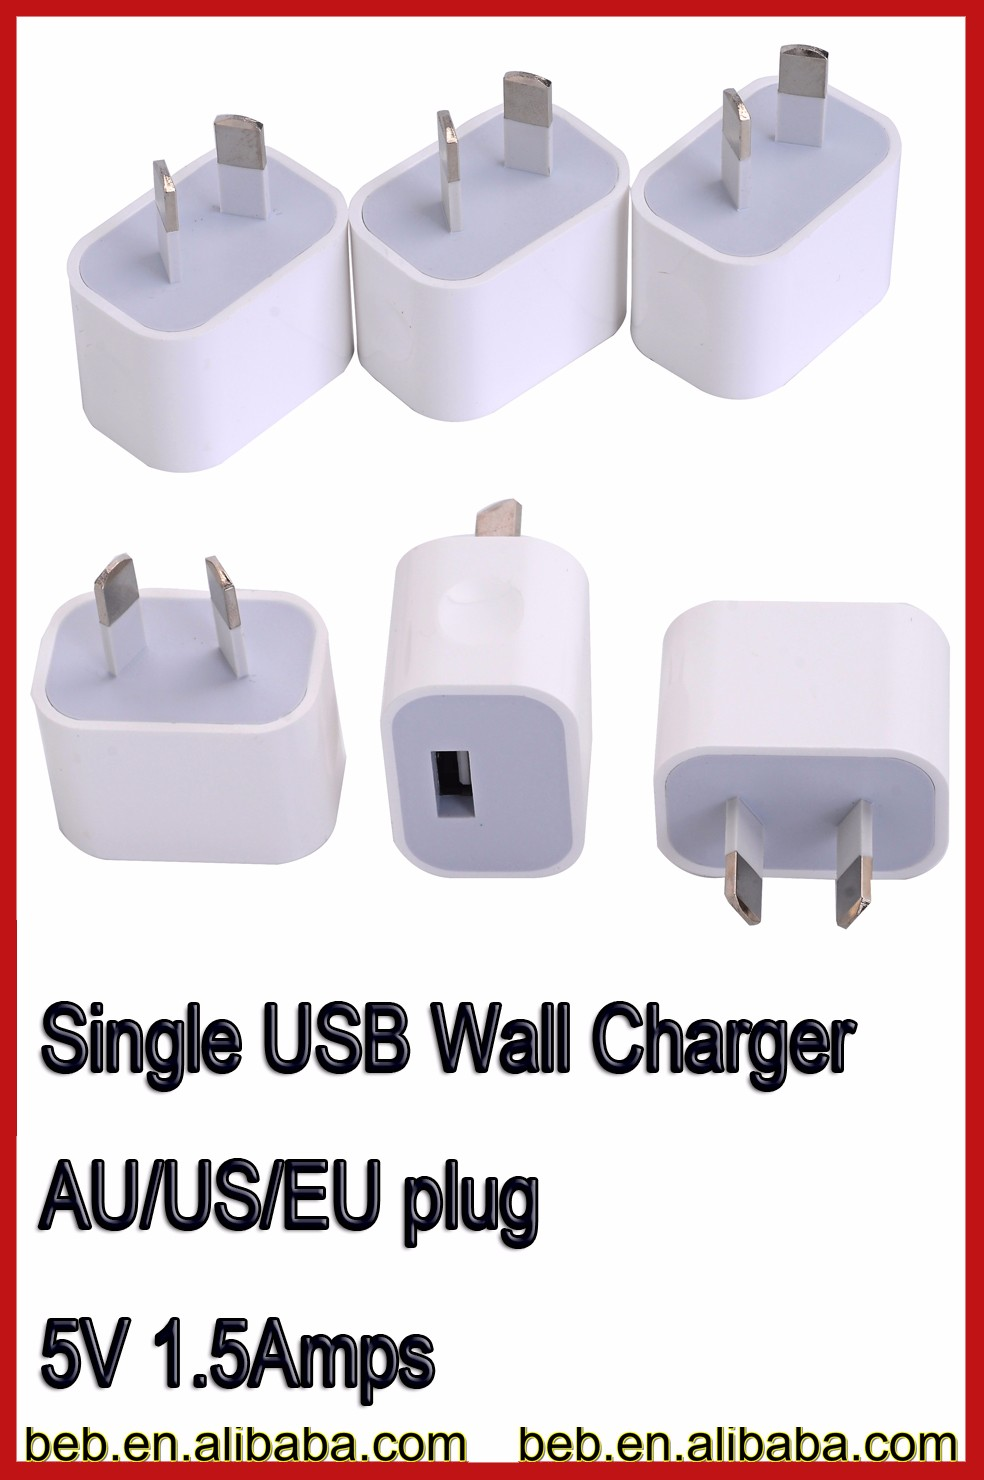 2016 hot selling usb wall charger, for iphone 6s iphone 7 wall charger